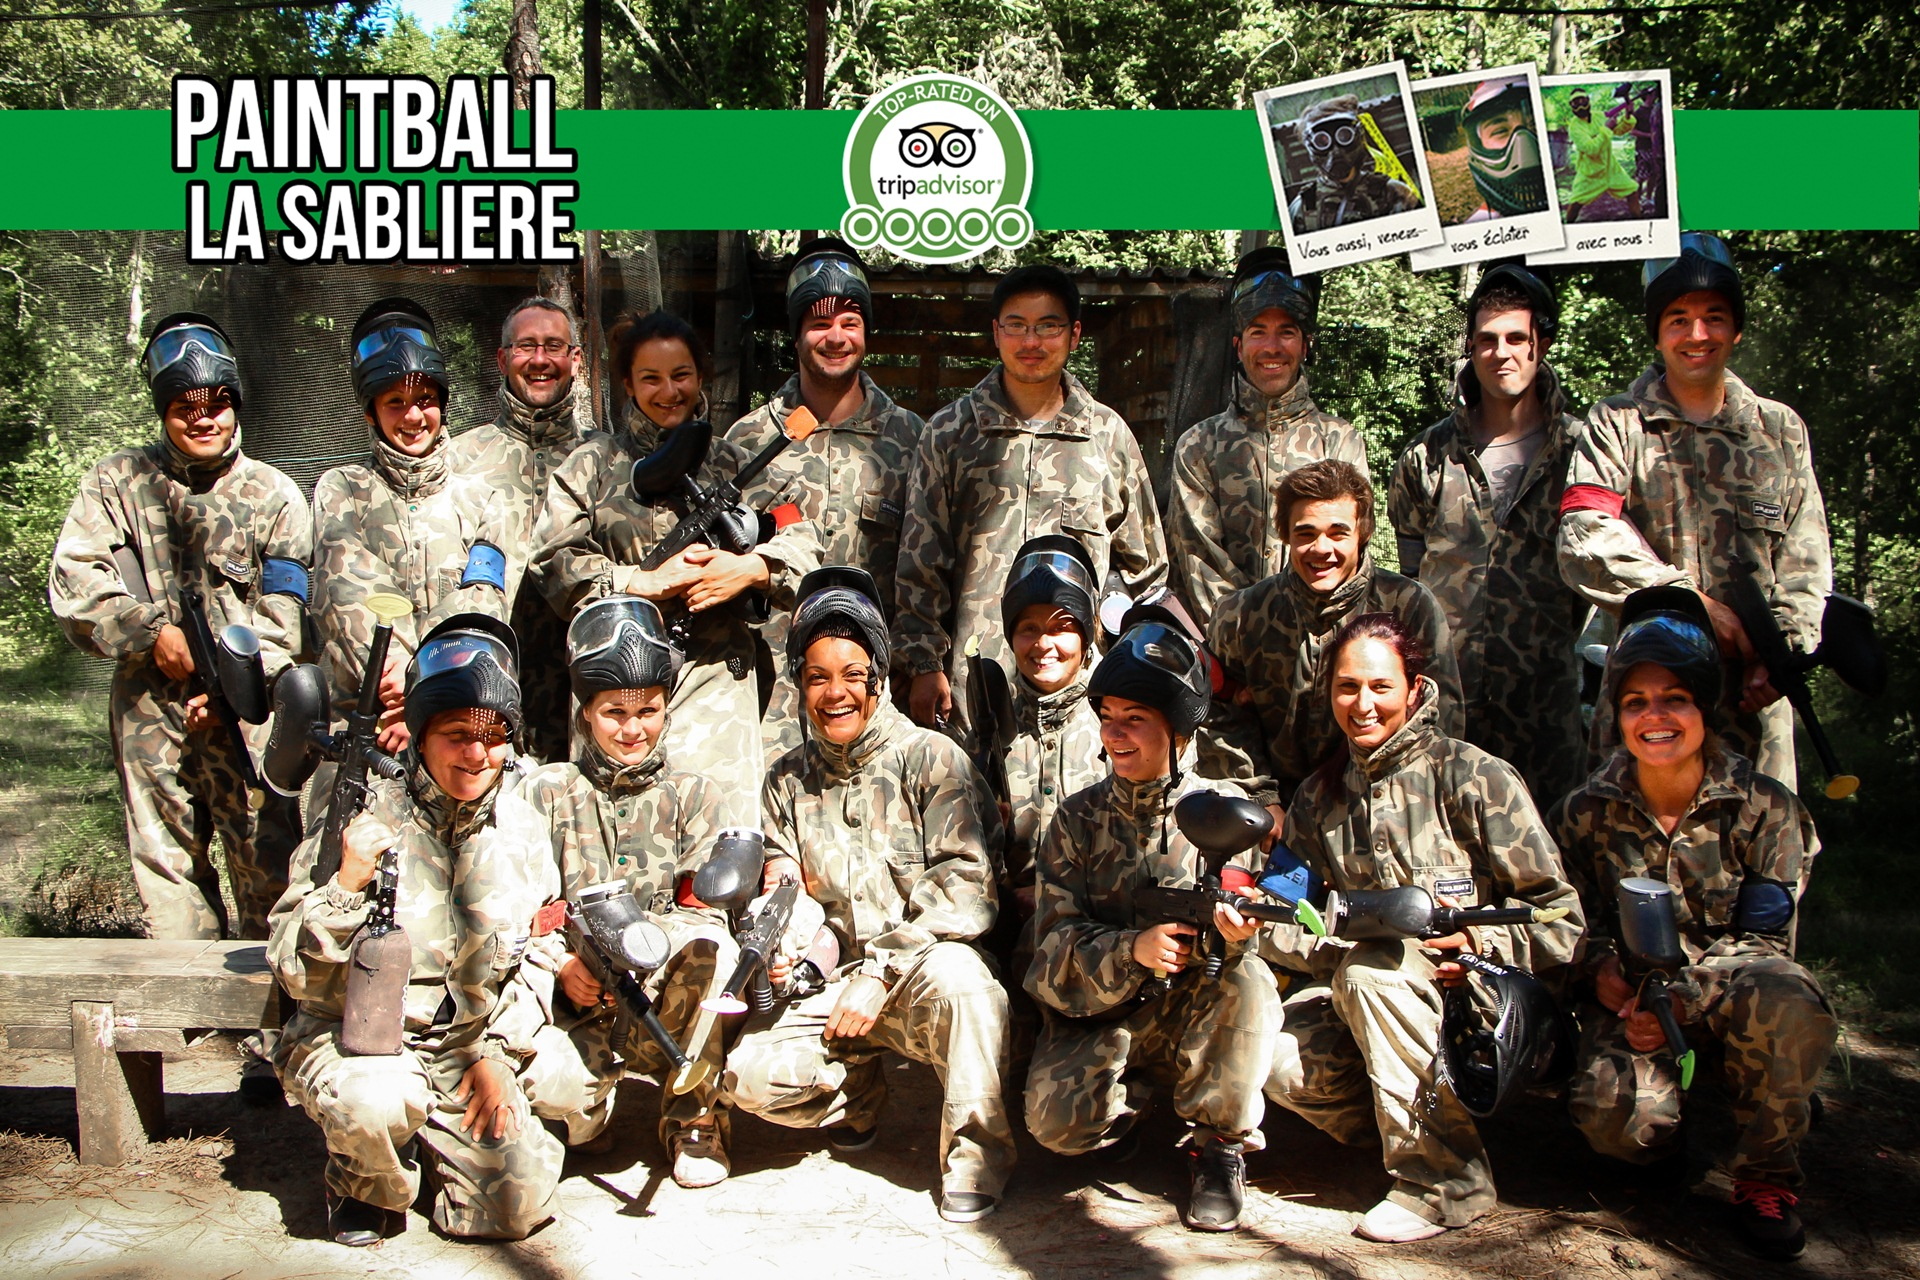 Paintball la Sablière